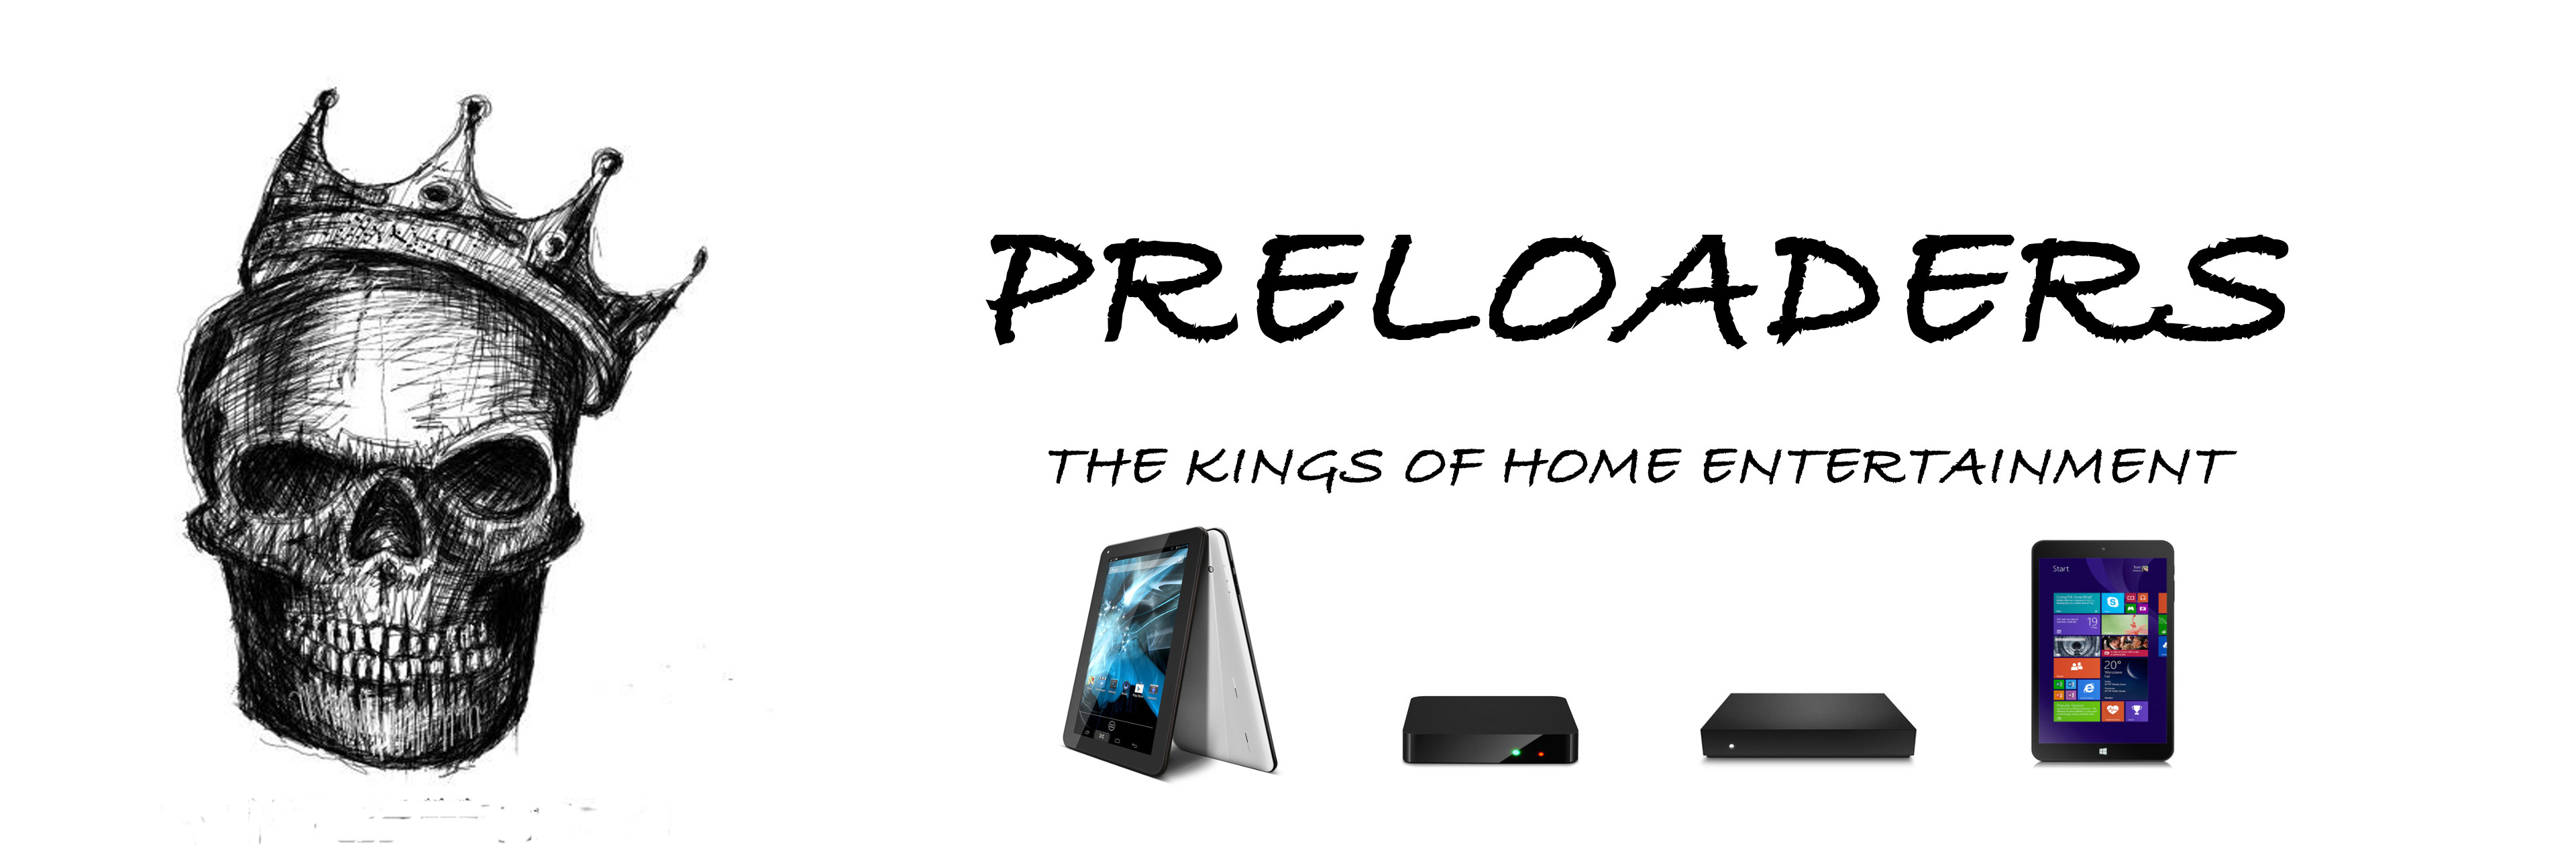 Preloaders - The Kings of Home Entertainment